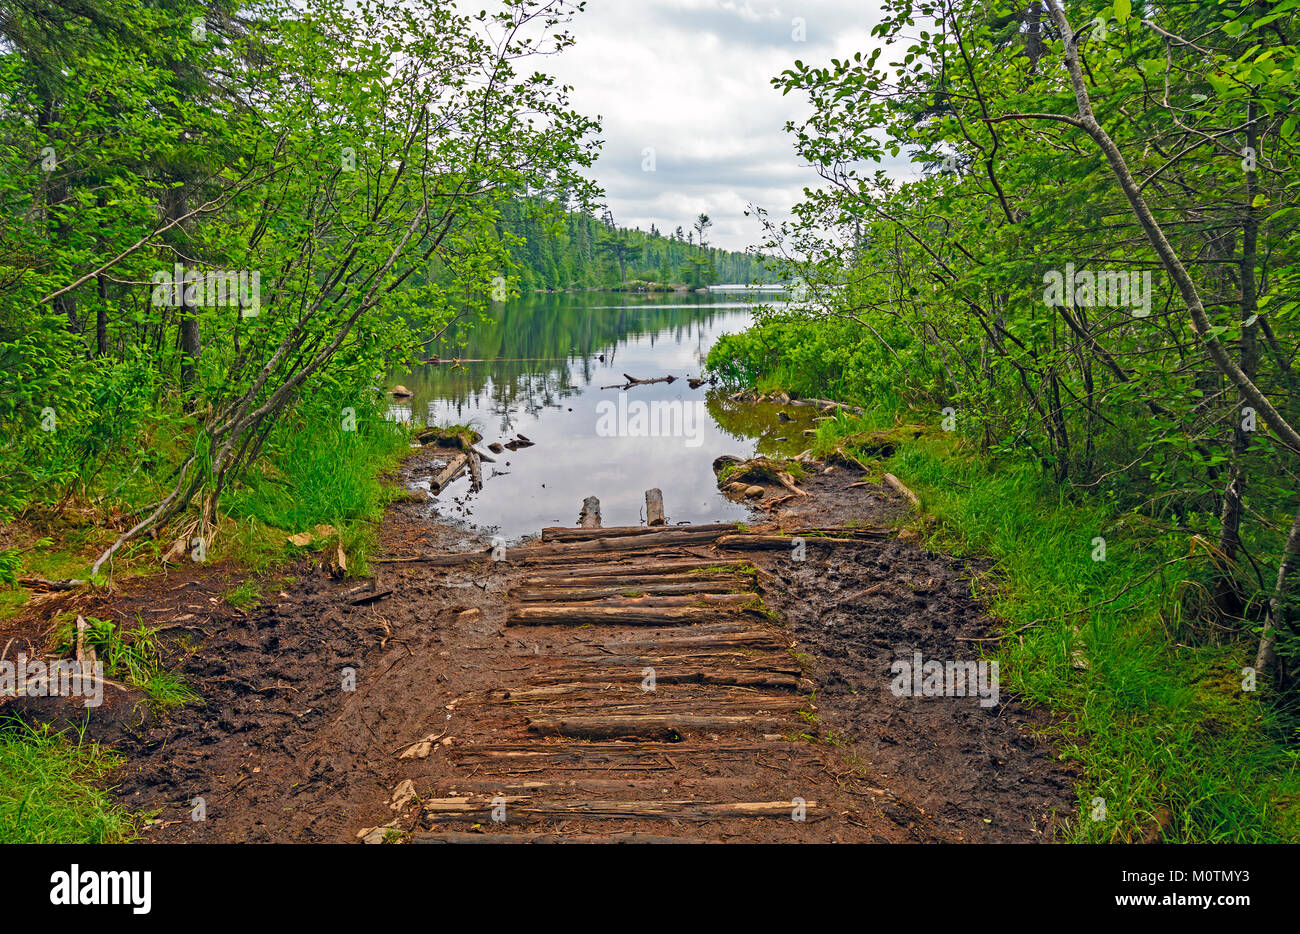 Portage Trail to Lizz Lake in the Boundary Waters in Minnesota Stock Photo